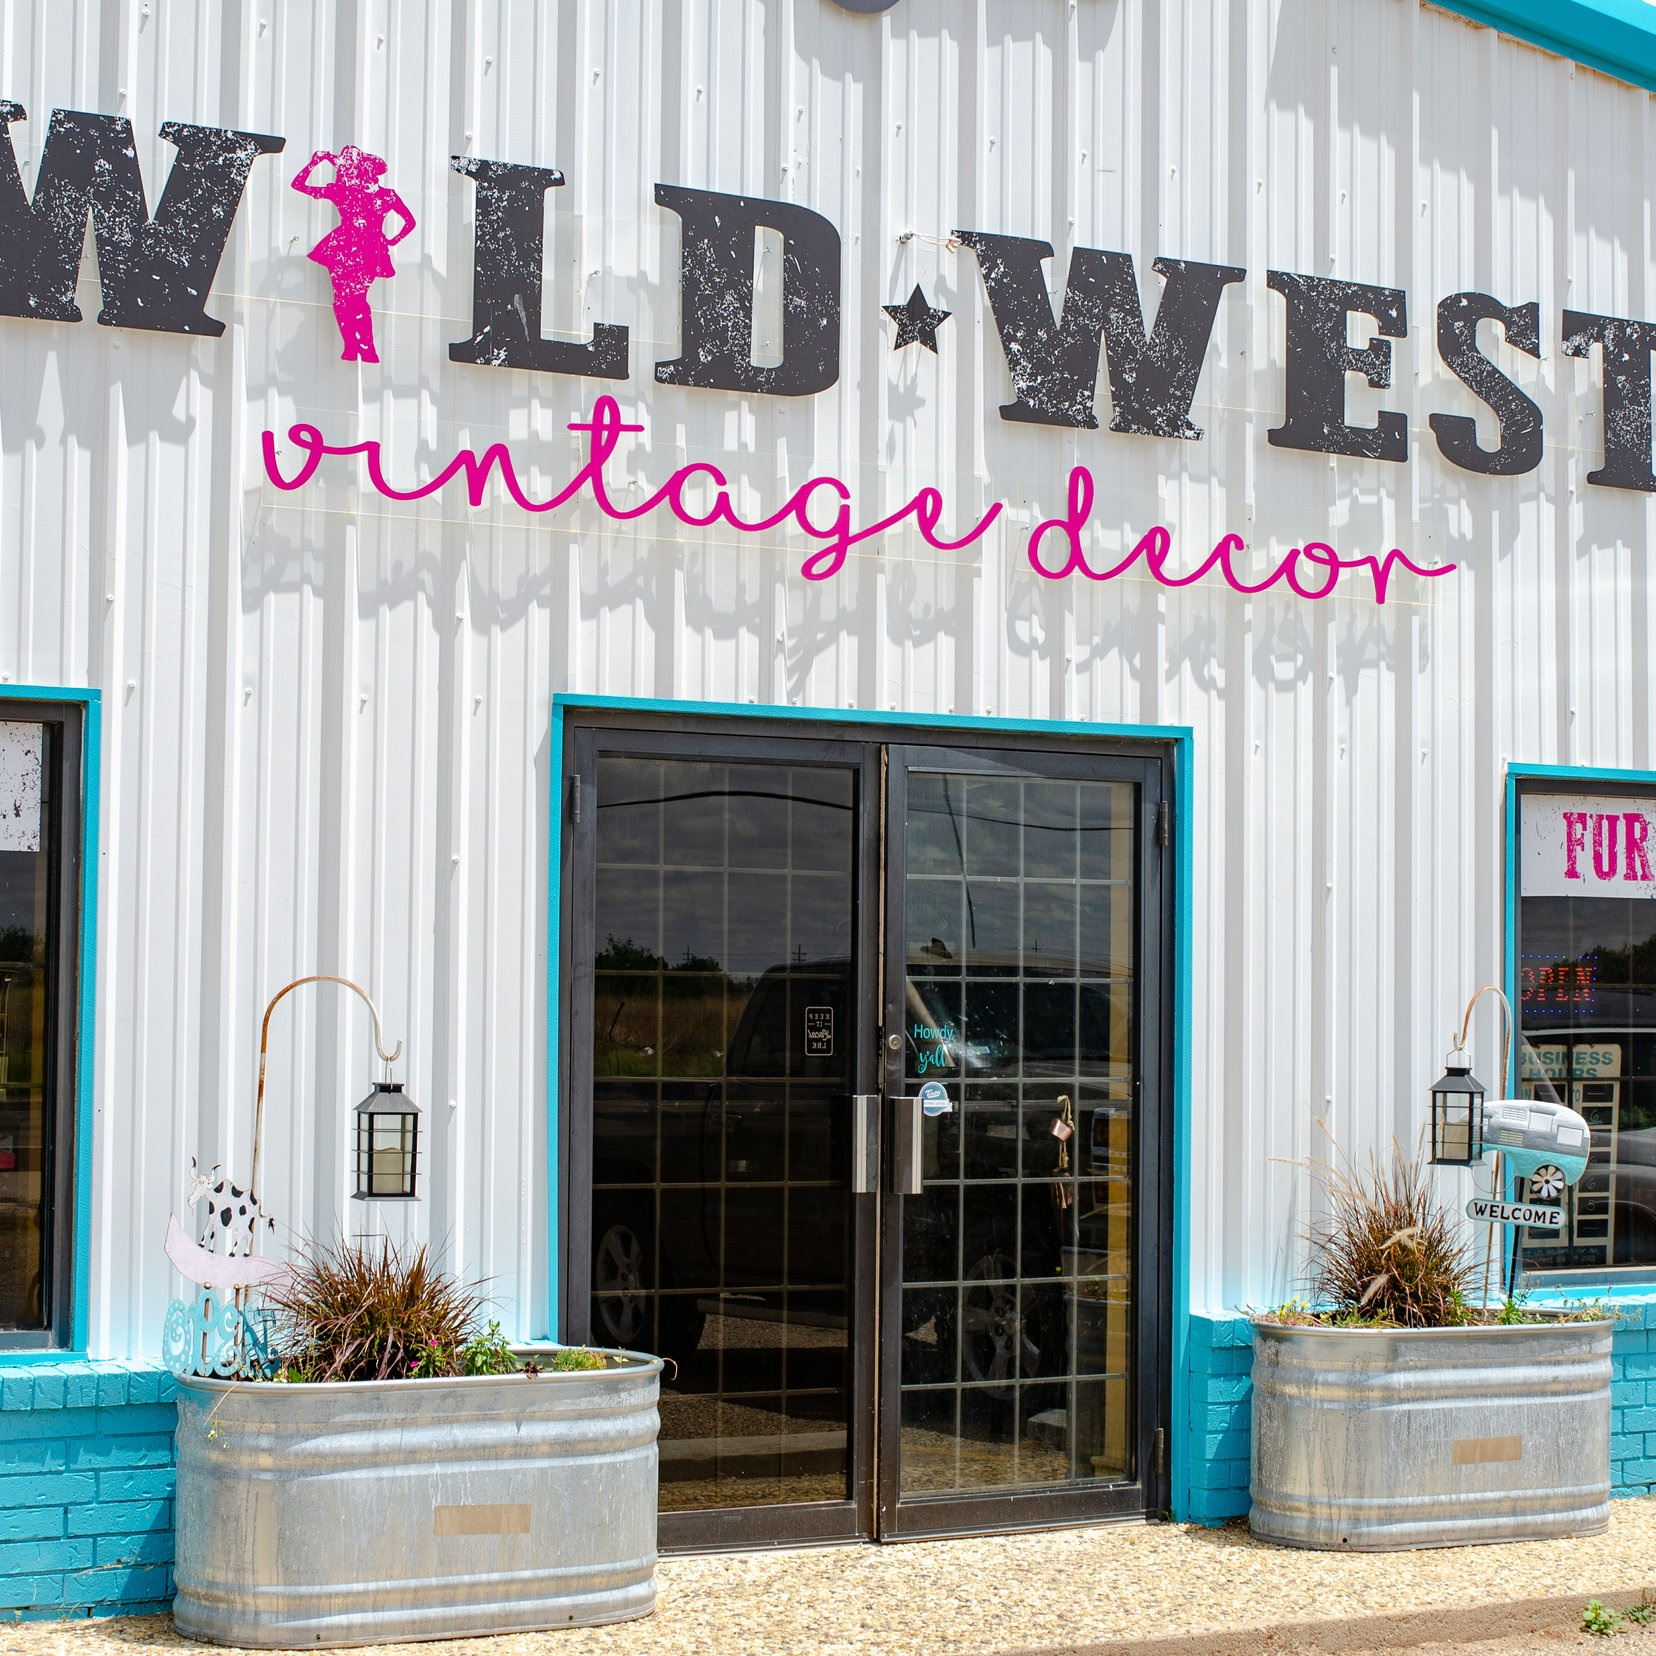 Wild West Vintage Decor - 15% Off Your Purchase